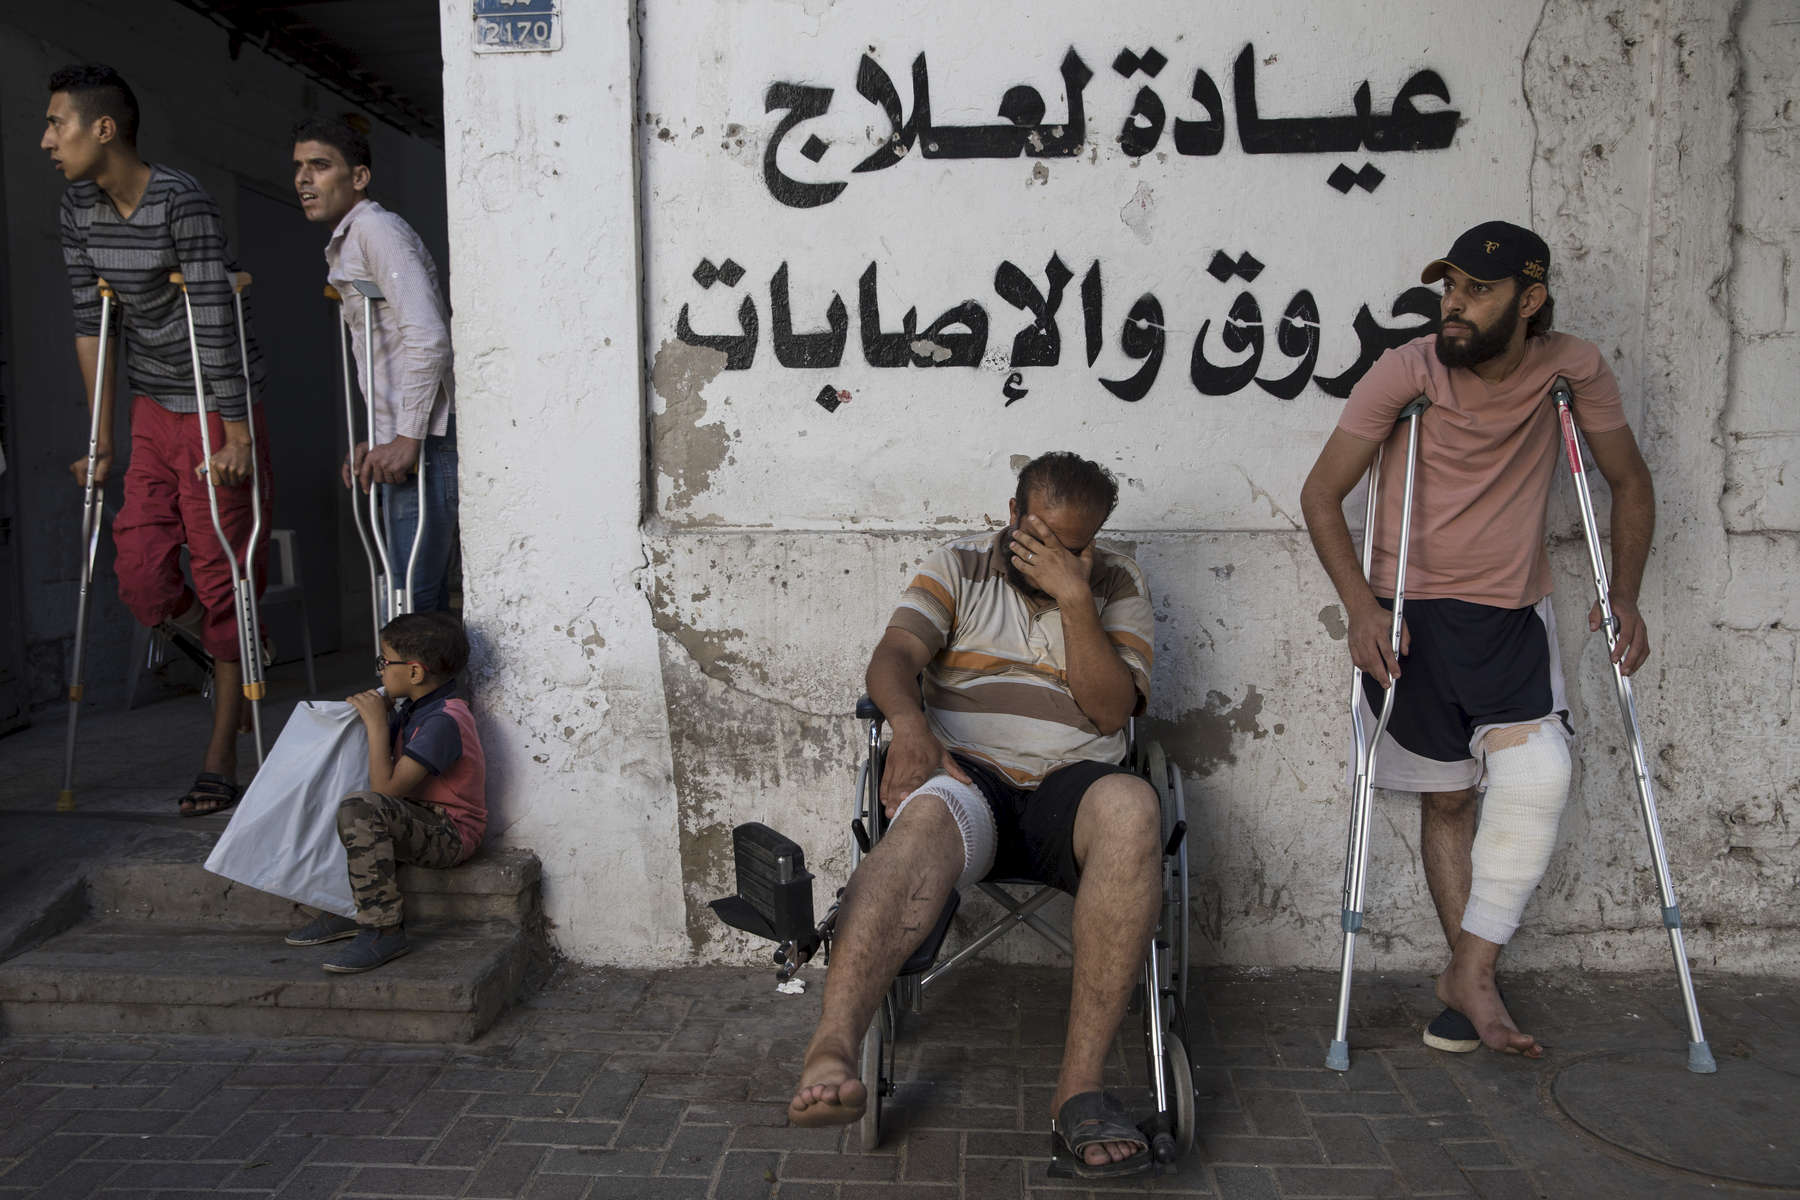 GAZA CITY, GAZA STRIP- MAY 17,2018: At the Médecins Sans Frontières (MSF) clinic male patients are lined up awaiting medical treatment on May 17,2018 in Gaza city, Gaza strip. MSF has focused their attention on treating injuries  caused by bullet wounds. According to the International Committee of the Red Cross (ICRC), 13,000 Palestinians were wounded (as of June 19, 2018), the majority severely, with some 1,400 struck by three to five bullets. No Israelis were physically harmed during this time period, Israel's use of deadly force was condemned during the UN general assembly on June 13 th along with other human rights organizations. The Israeli military (IDF) started using new weaponry, explosive bullets that shatter bones, tissue, destroying veins and arteries, the aim is to create a handicapped community, especially amongst the young male population. Many of the wounded protesters have to undergo multiple surgeries to try to save their limbs, and in some cases amputation is the only solution. With limited healthcare available in Gaza many were sent to Jordan and Turkey for further treatment. More issues that plague Gaza include a water supply that is 95 percent contaminated and a population forced to live without electricity for 21 hours a day. Gaza is compared to Venezuela with almost half of it's labor force unemployed. Everyone is well aware that Gaza's two million inhabitants are trapped in a cycle of violence and poverty, living in an open air prison. The problems and complications affecting Gaza today are overwhelming. The world, seemingly accustomed to the suffering of the Gazan people turns a blind eye. (Photo by Paula Bronstein )